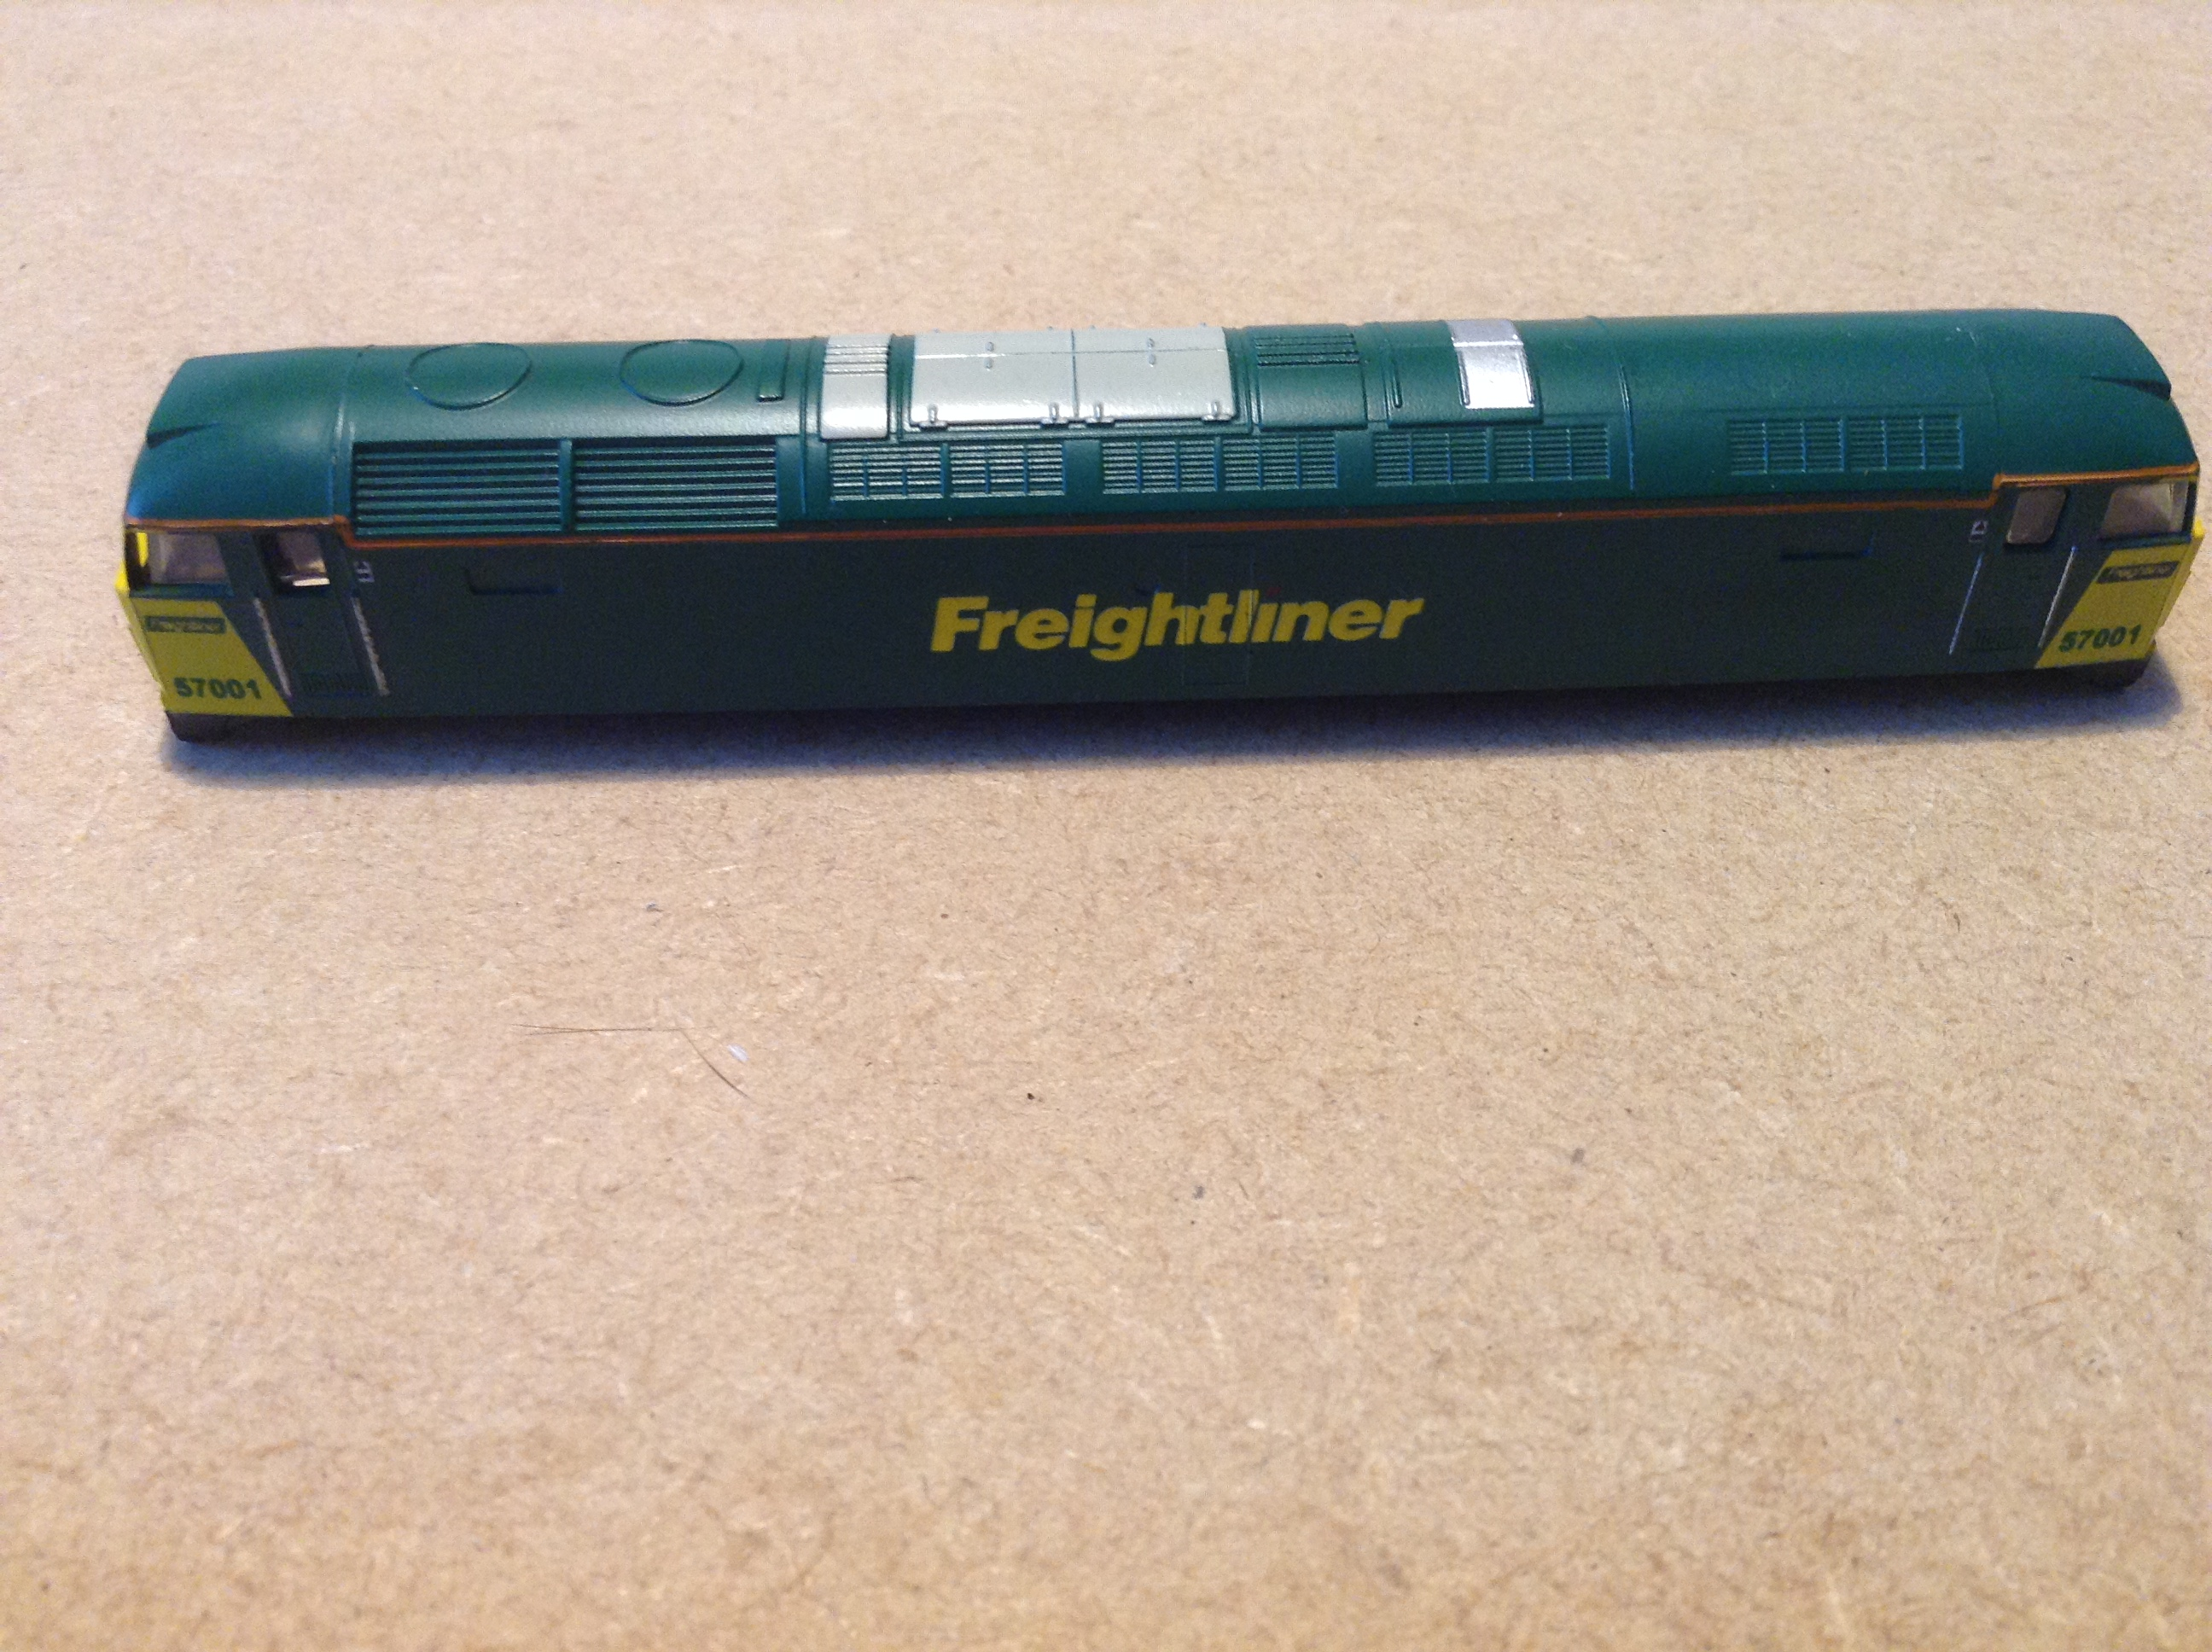 Farish Class 57 57001 Freightliner Livery